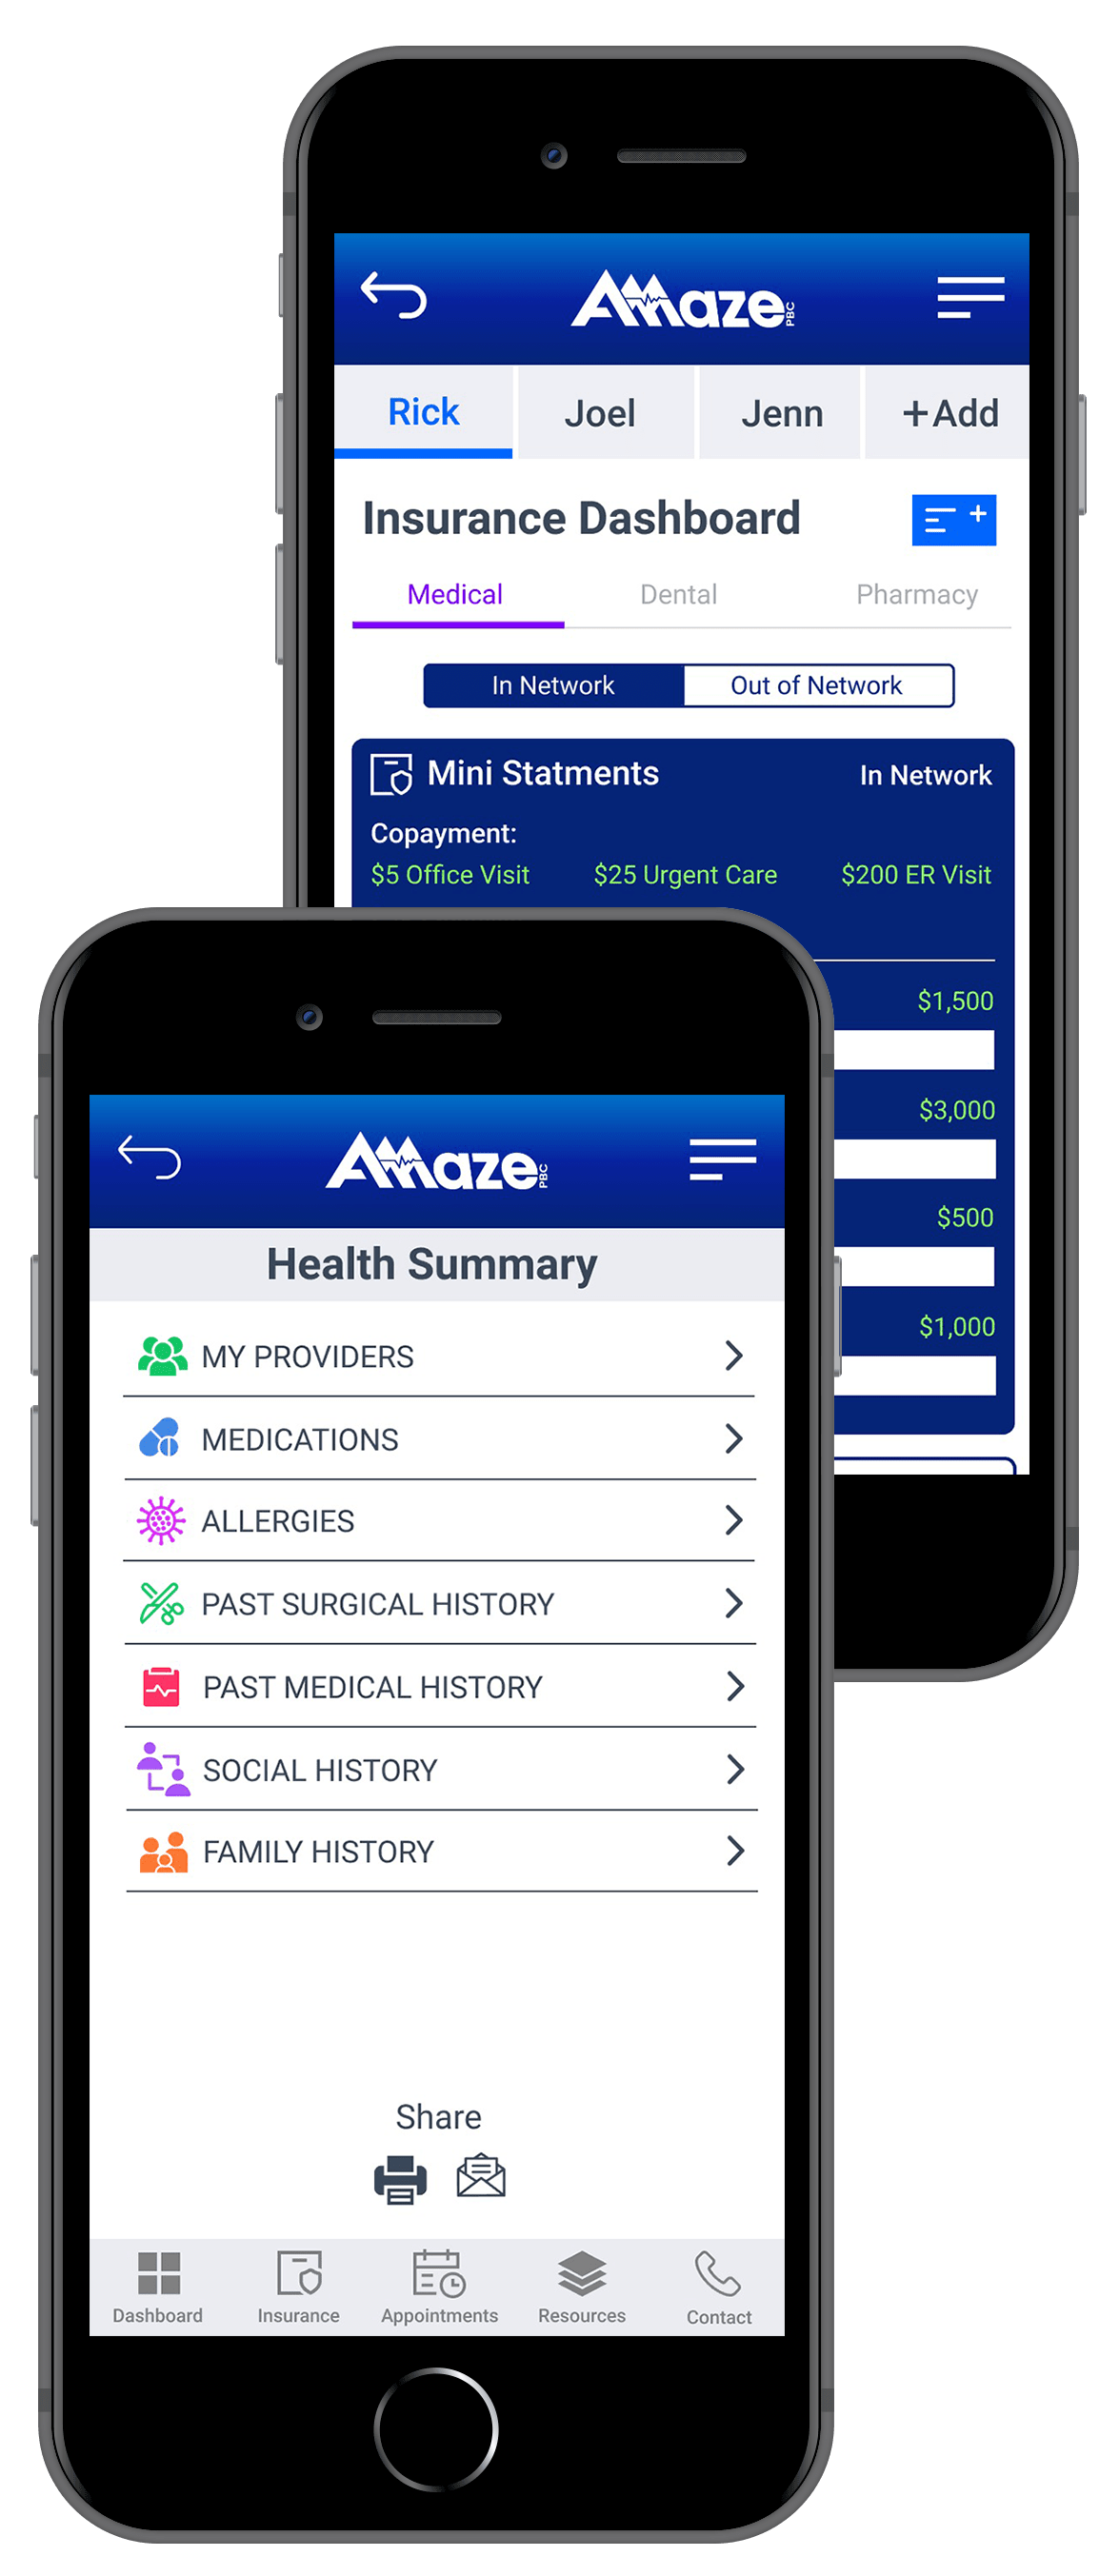 The features of the Amaze Health app